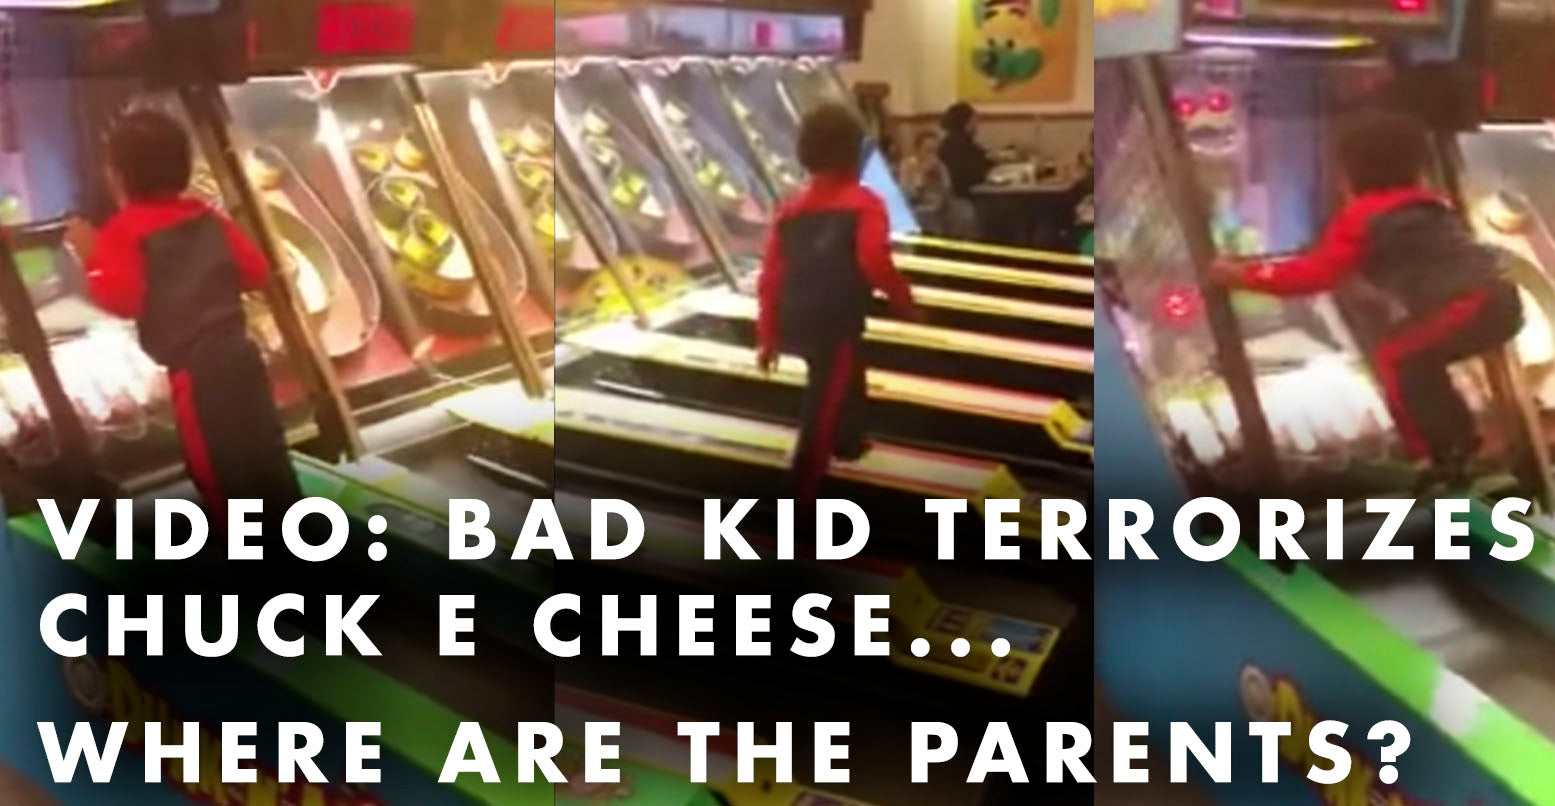 VIDEO: Bad Kid Terrorizes Chuck E Cheese... Where Are The Parents?